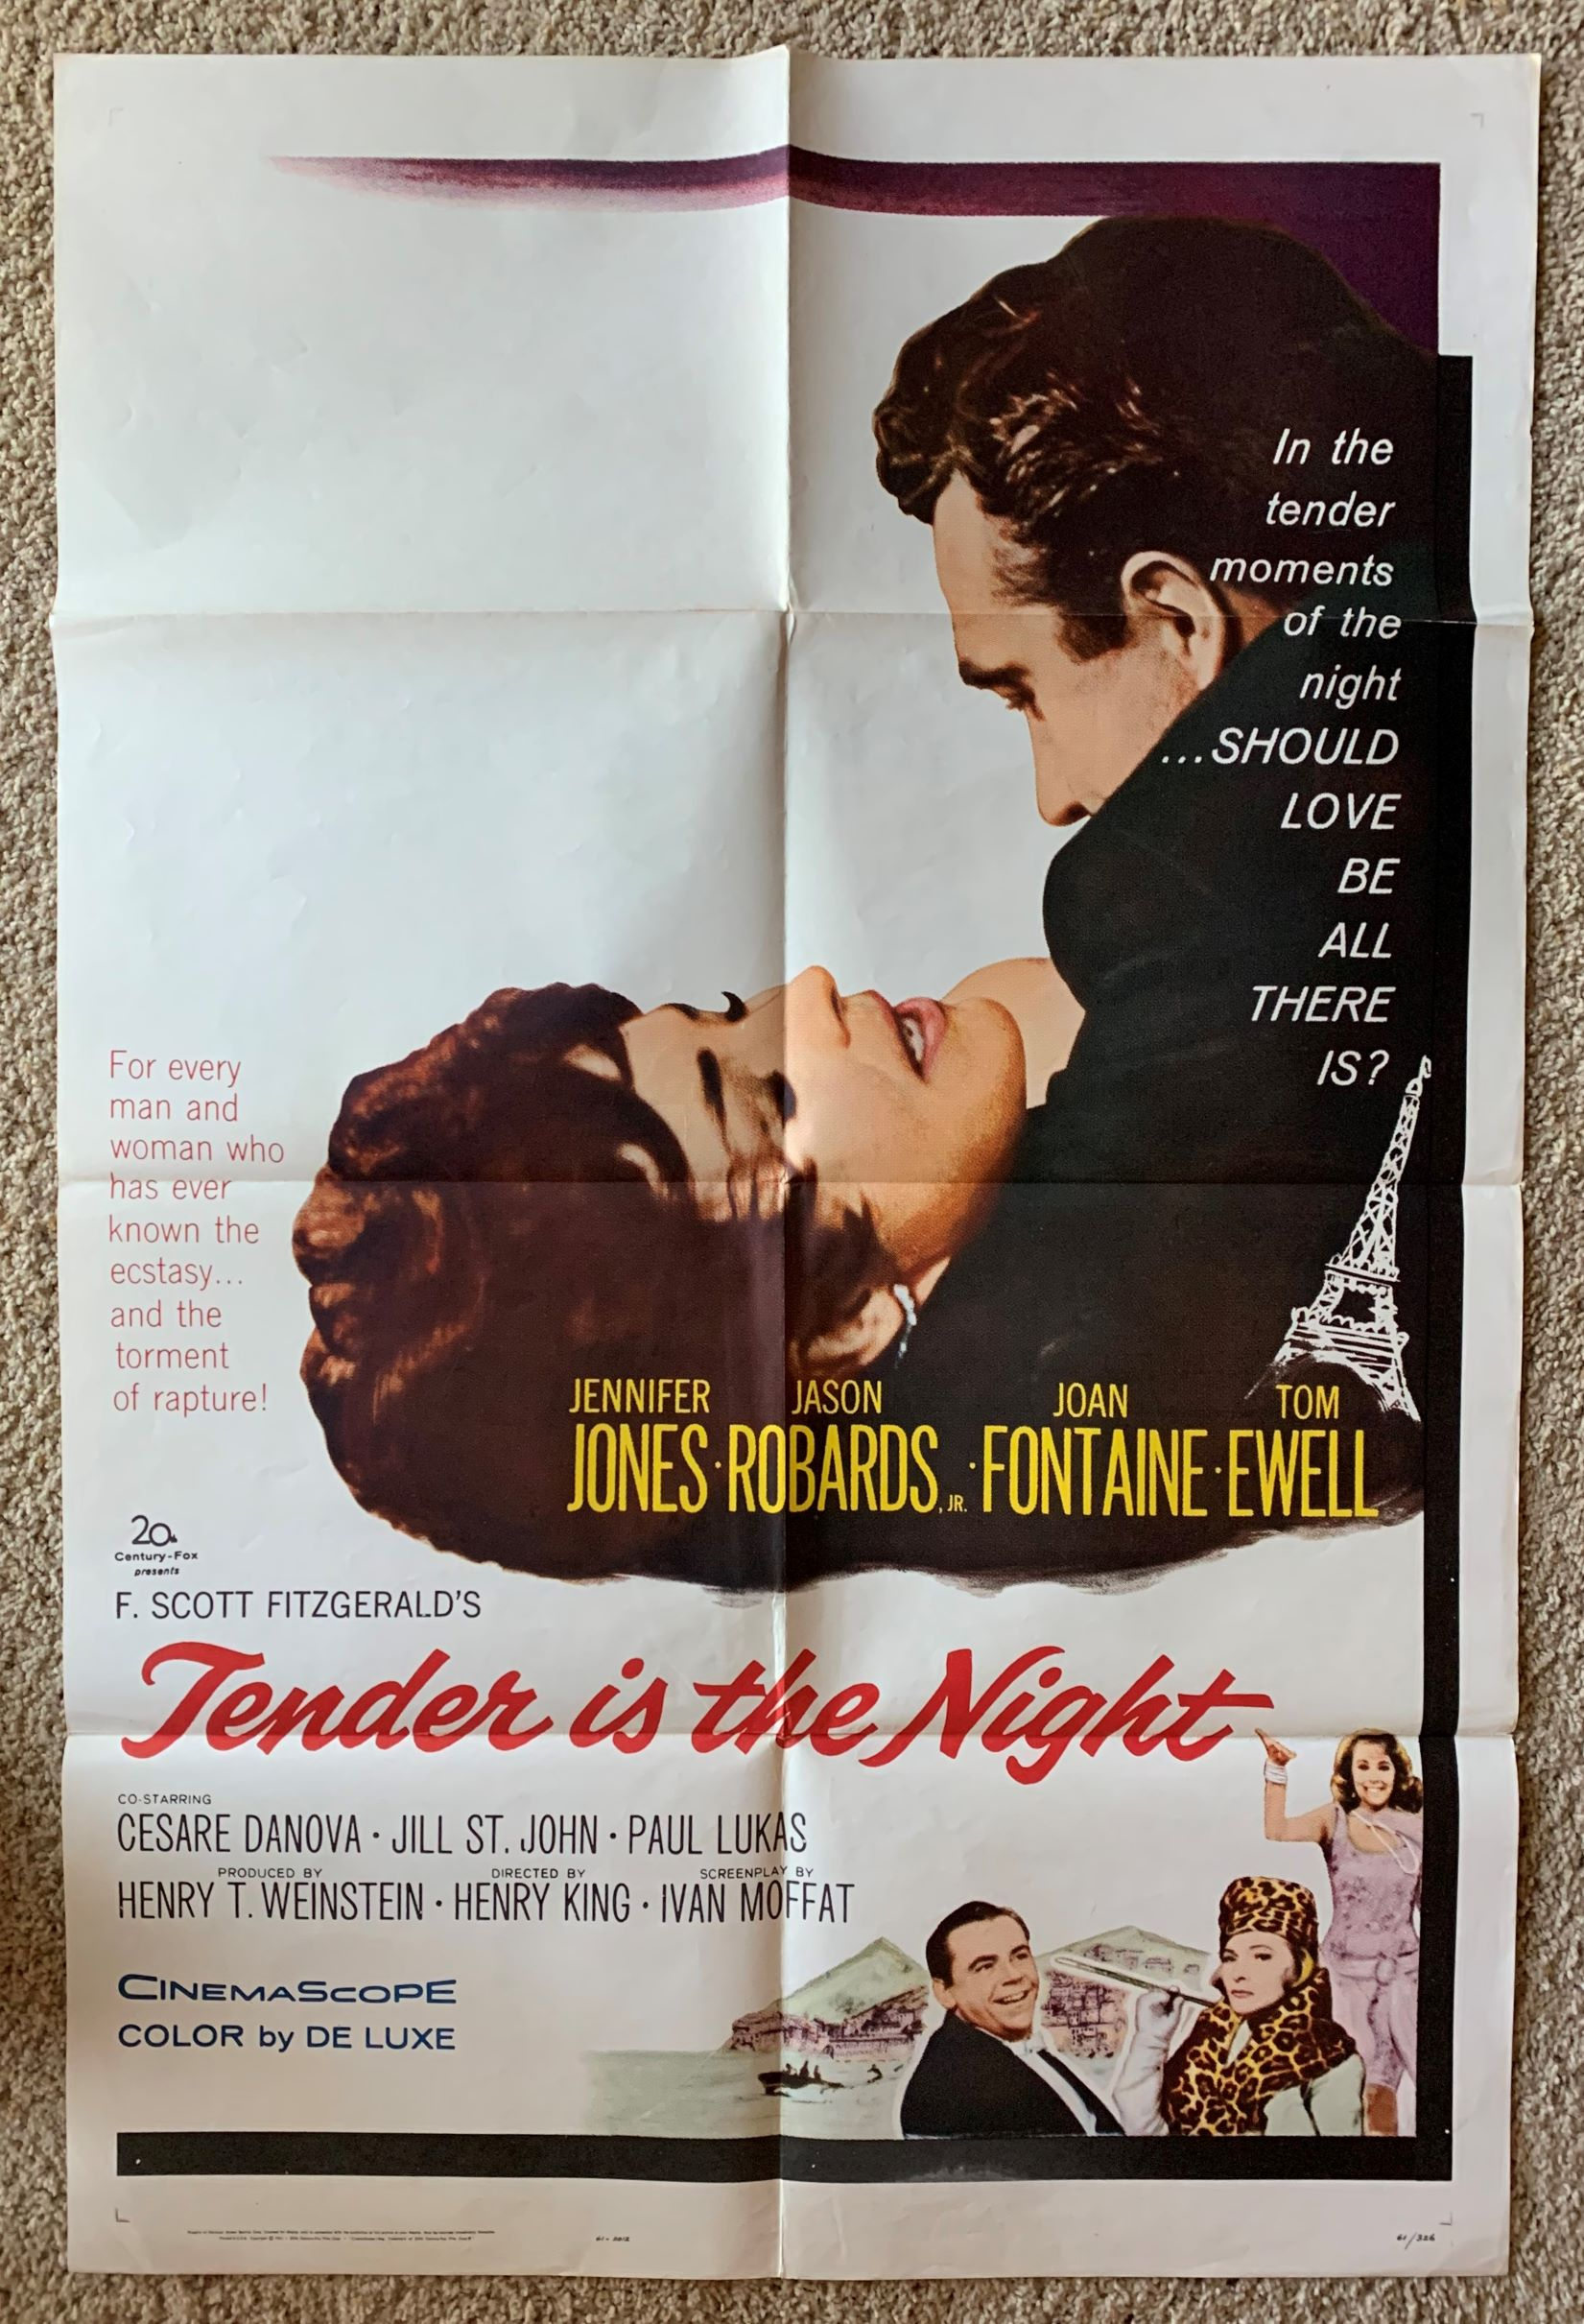 Image for [Movie Poster] Tender is the Night.  Starring Jennifer Jones, Jason Robards, Joan Fontaine, Tom Ewell.